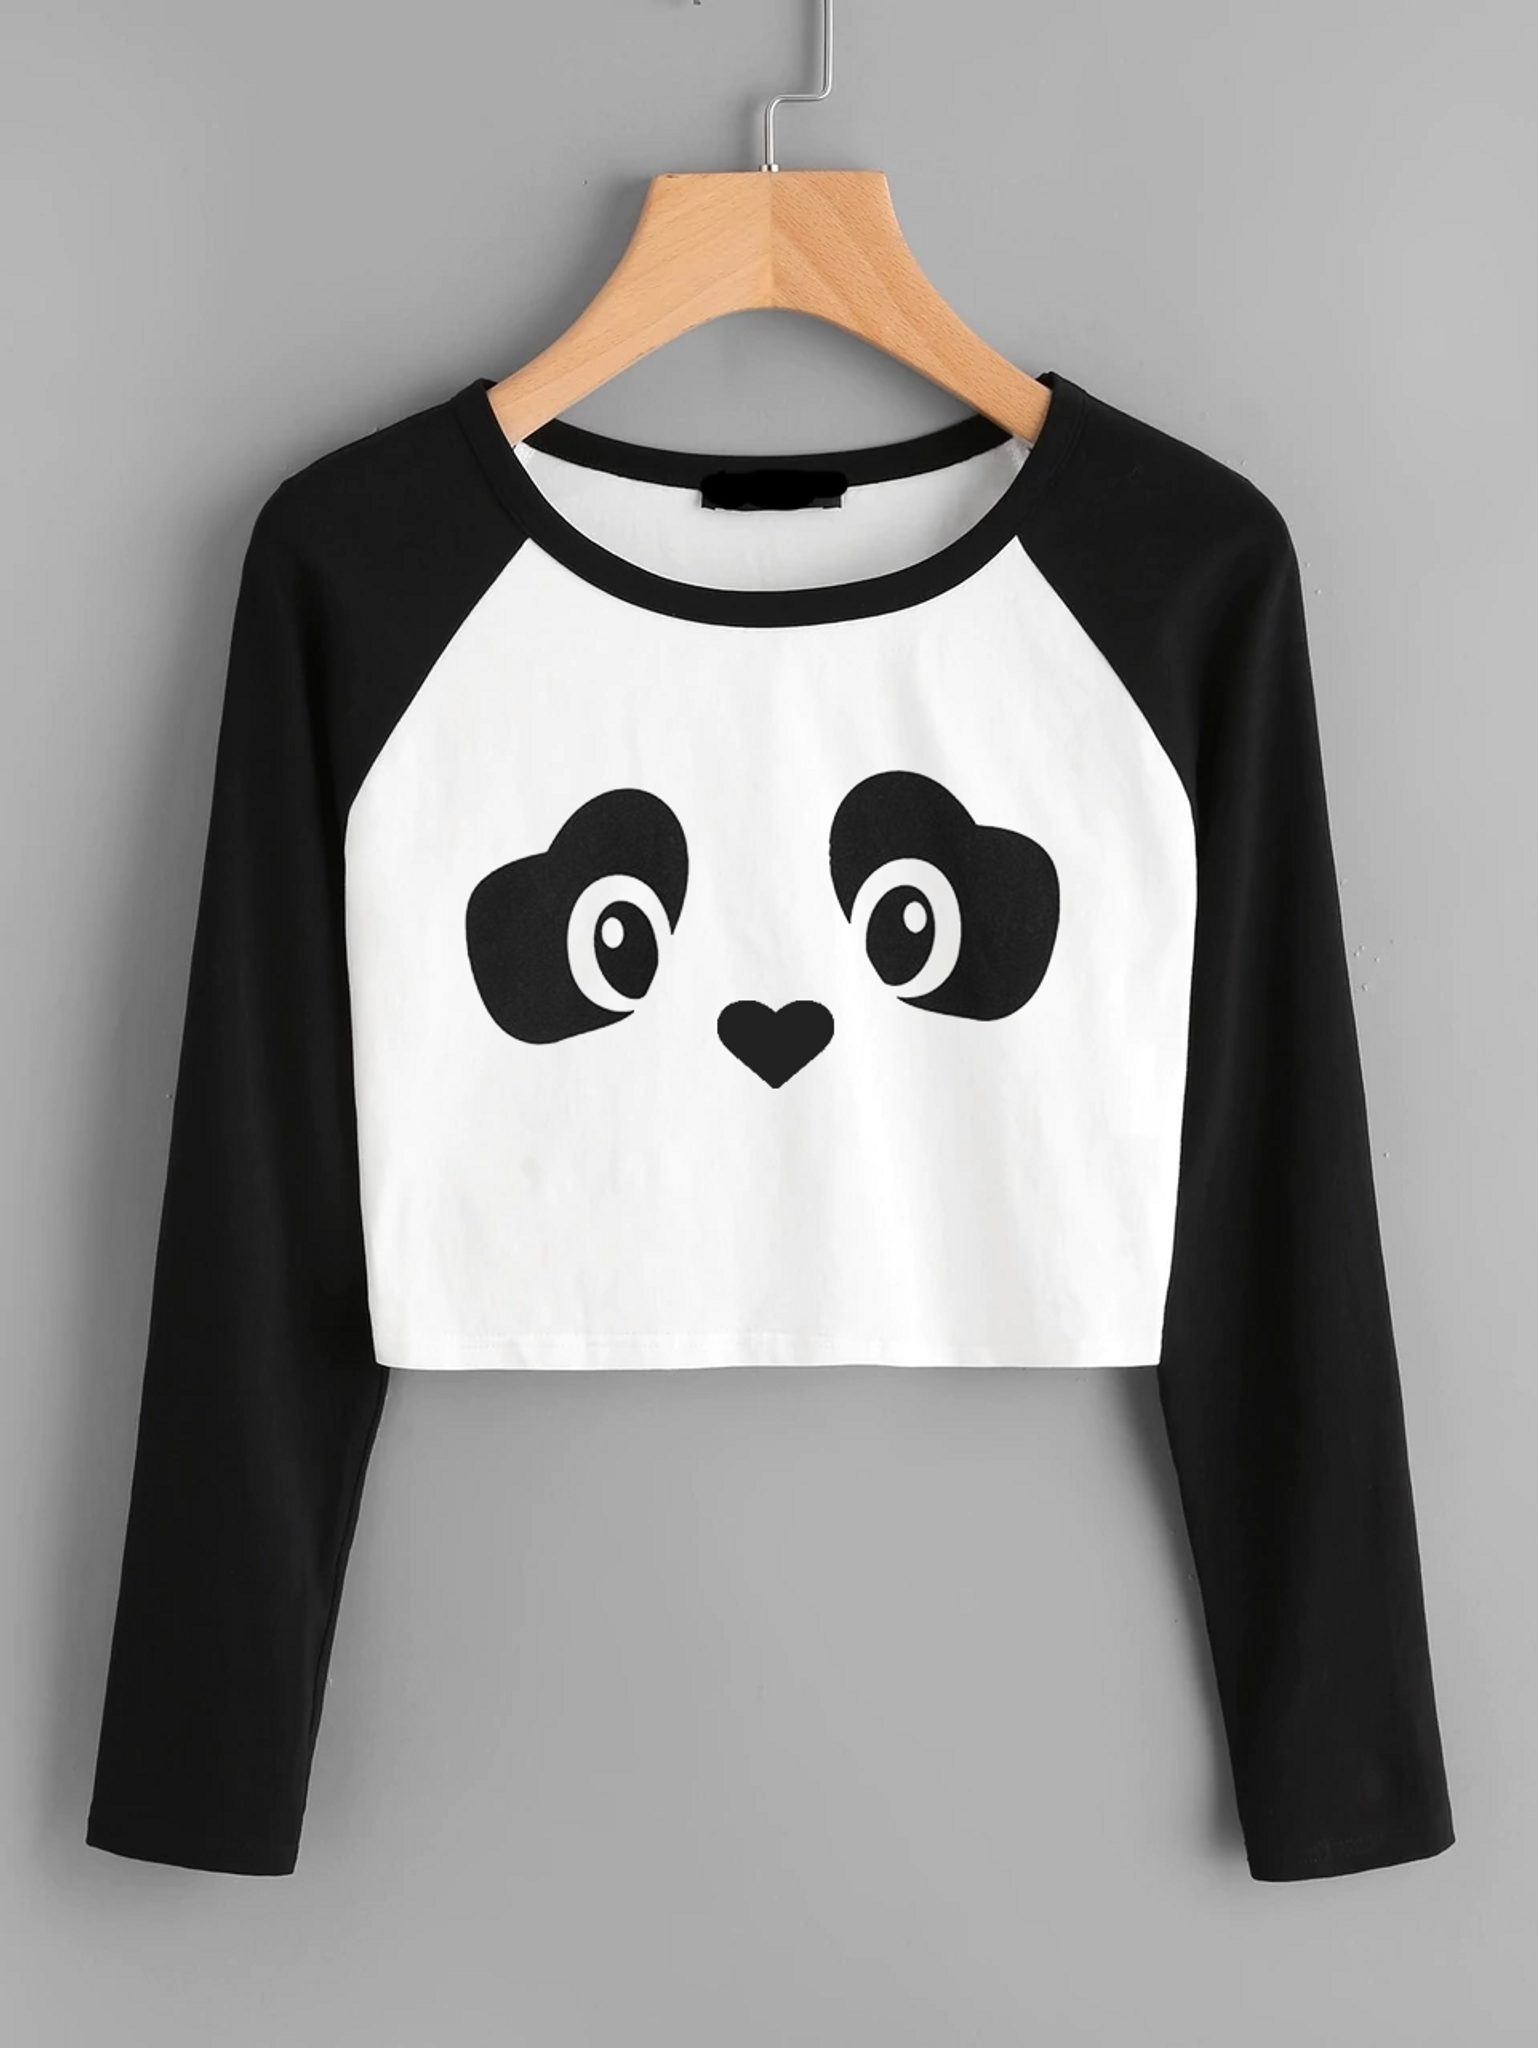 Fifth Avenue Women s Raglan Full Sleeve Crop Panda Face T-Shirt - Black and  White 541a39327a